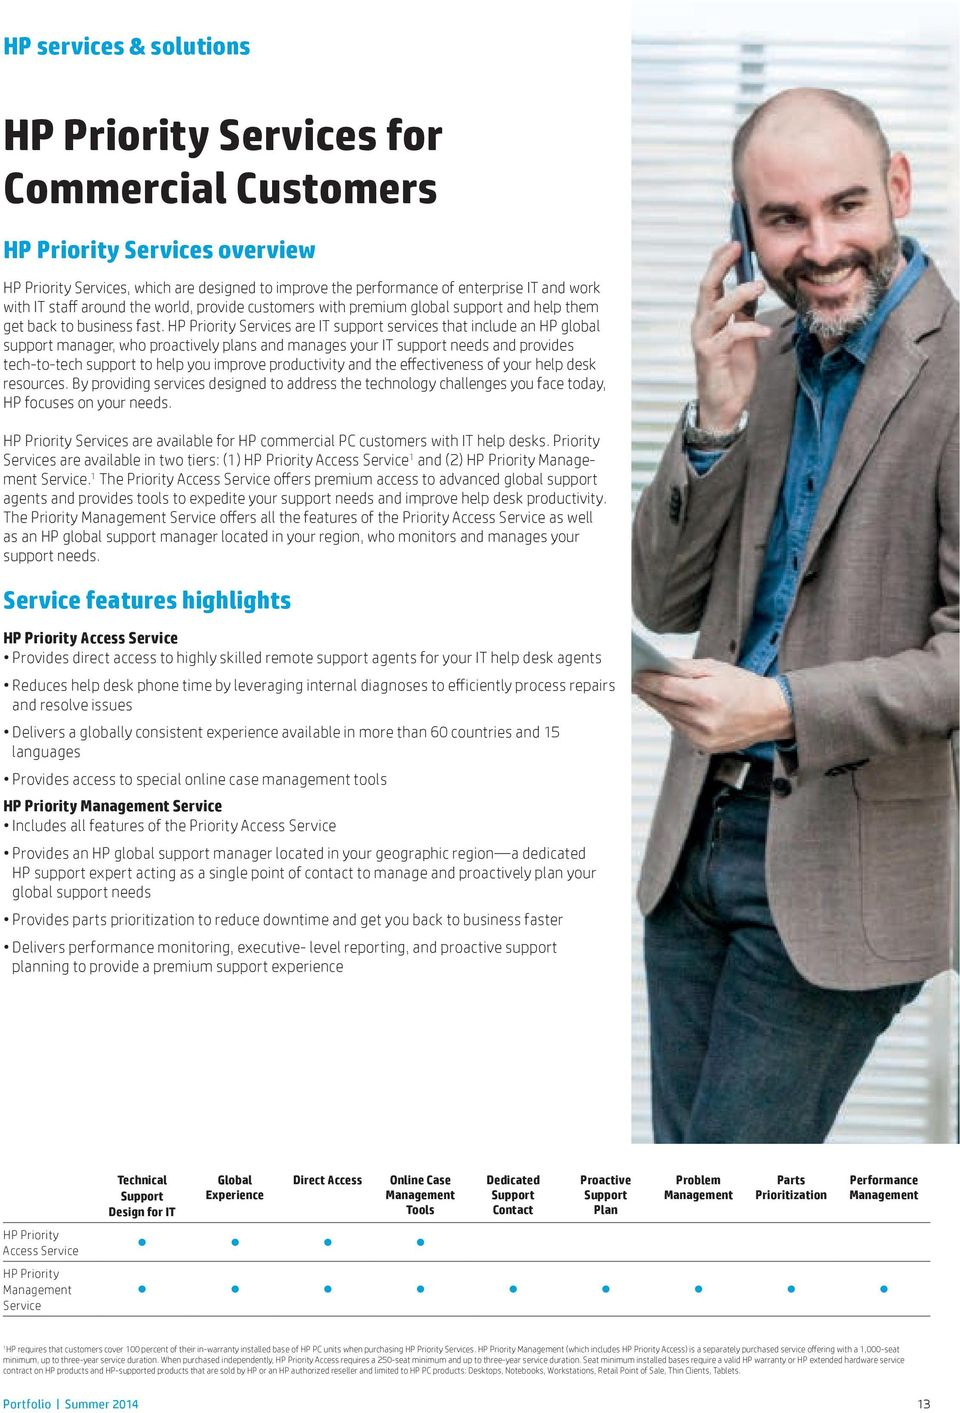 HP Priority Services are IT support services that include an HP global support manager, who proactively plans and manages your IT support needs and provides tech-to-tech support to help you improve